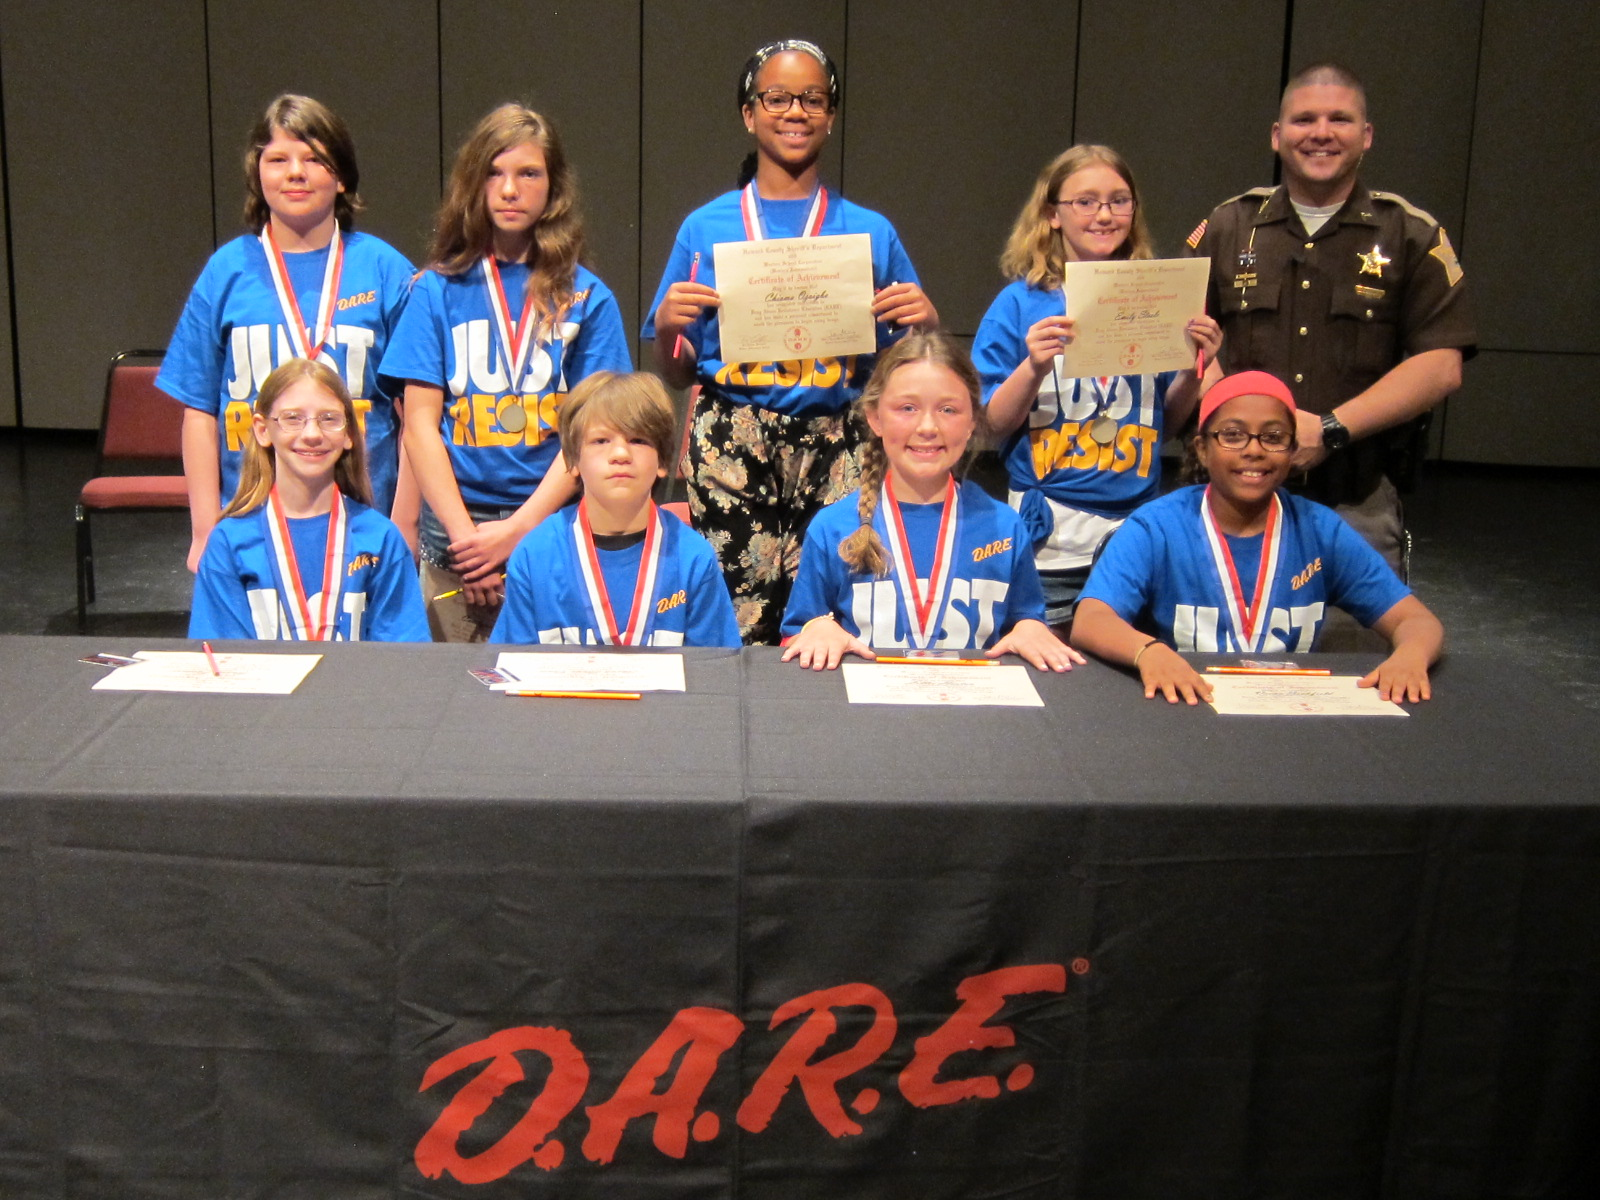 Western D.A.R.E. Winners (Workbook)